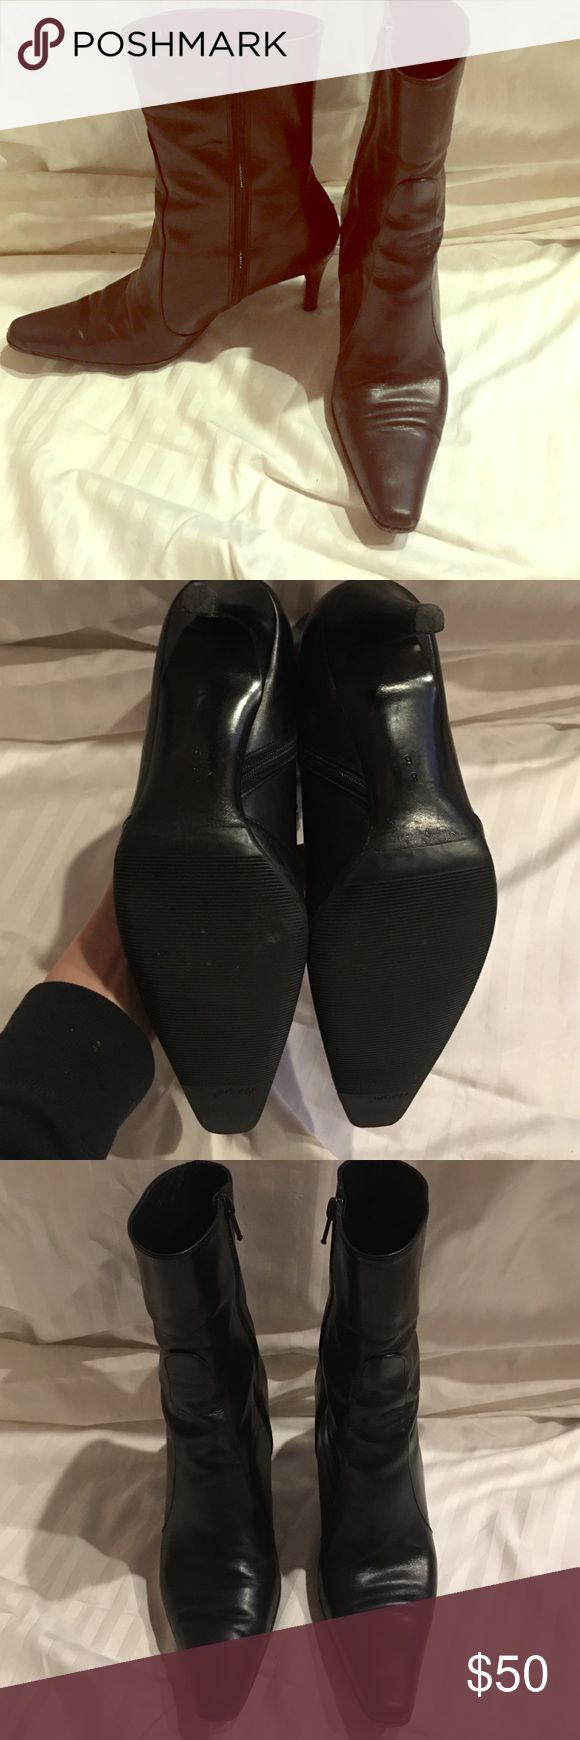 Cole Haan black leather boots Like new!! Cole Haan black leather boots, box included !! Cole Haan Shoes Ankle Boots & Booties